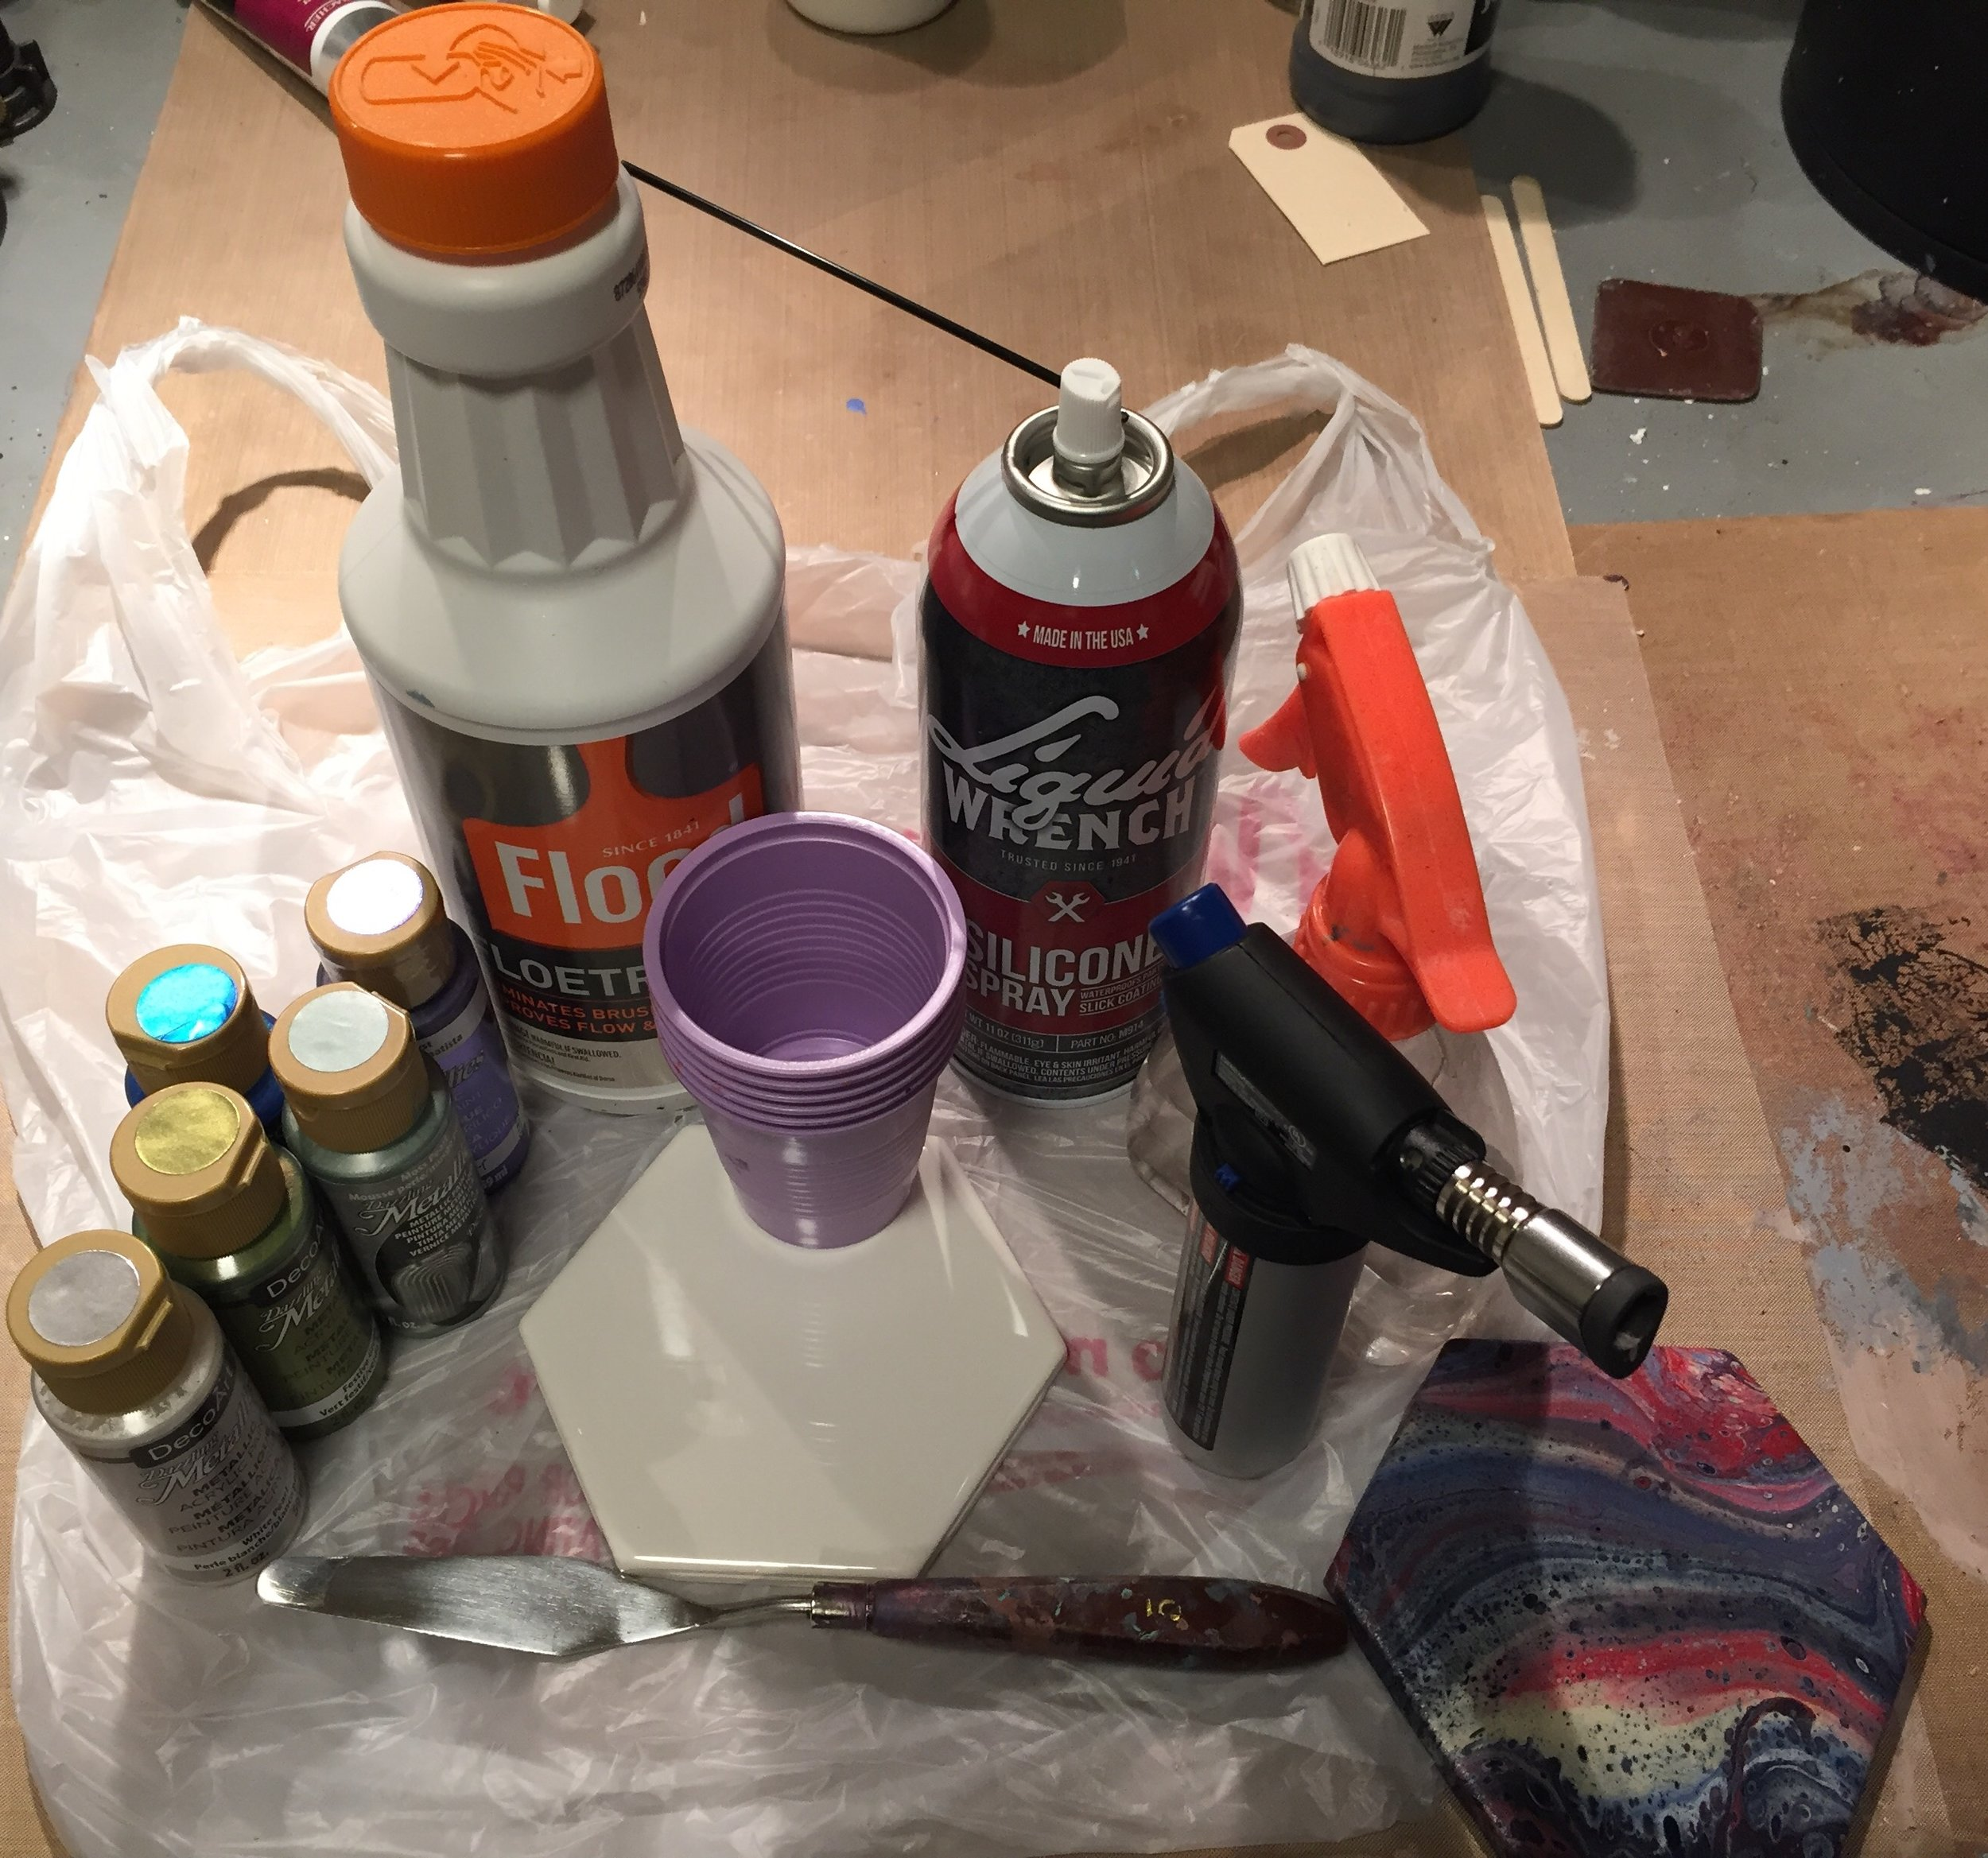 Acrylic Paint, Floetrol paint extender, disposable cups, ceramic tile, palette knife, 100% Silicone, water,torch.You will also need something to protect your work surface, stirring sticks (I use popsicle sticks) and paper towels. Disposable gloves also are recommended.